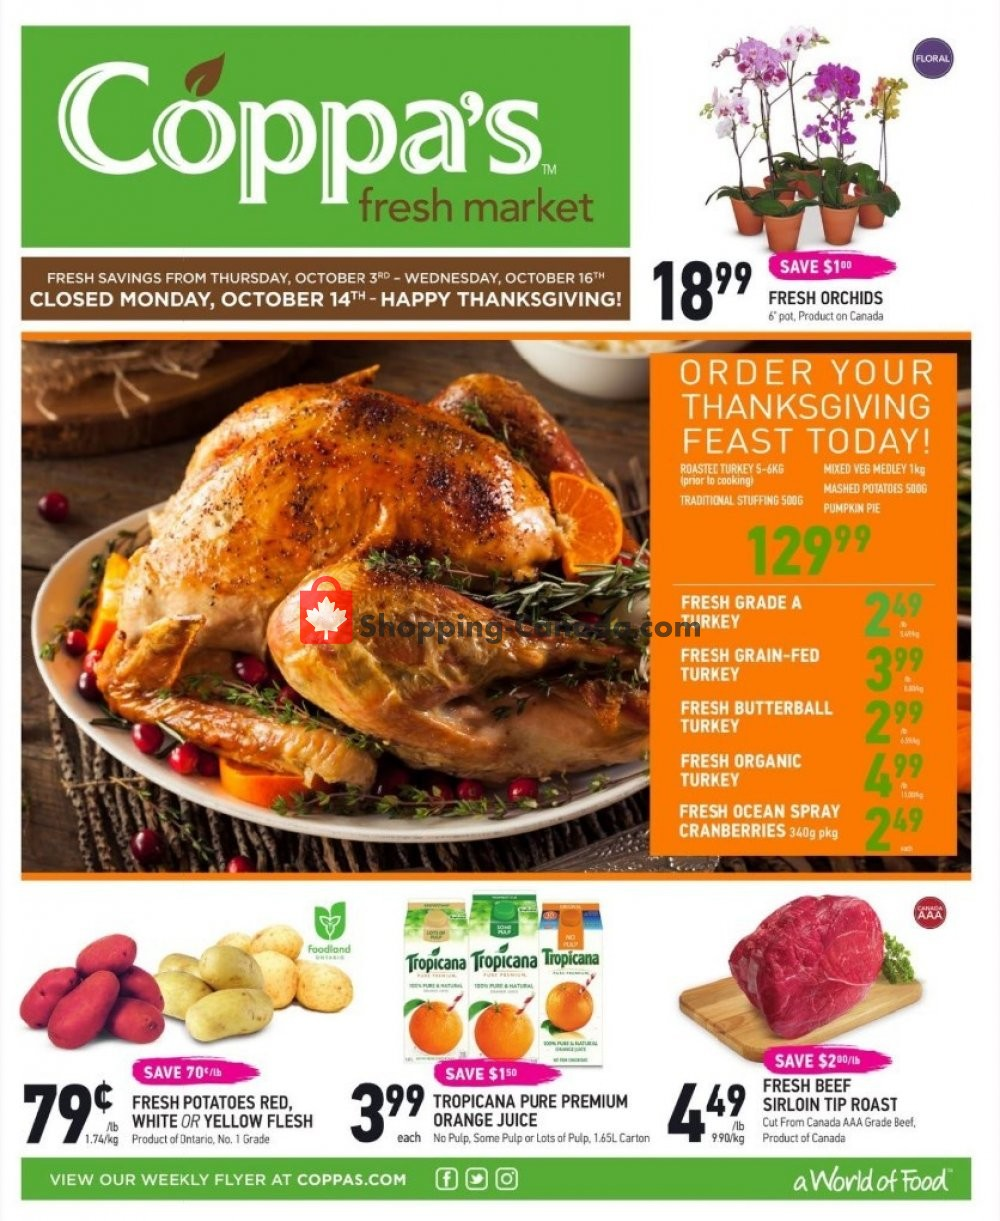 Flyer Coppa's Fresh Market Canada - from Thursday October 3, 2019 to Wednesday October 16, 2019